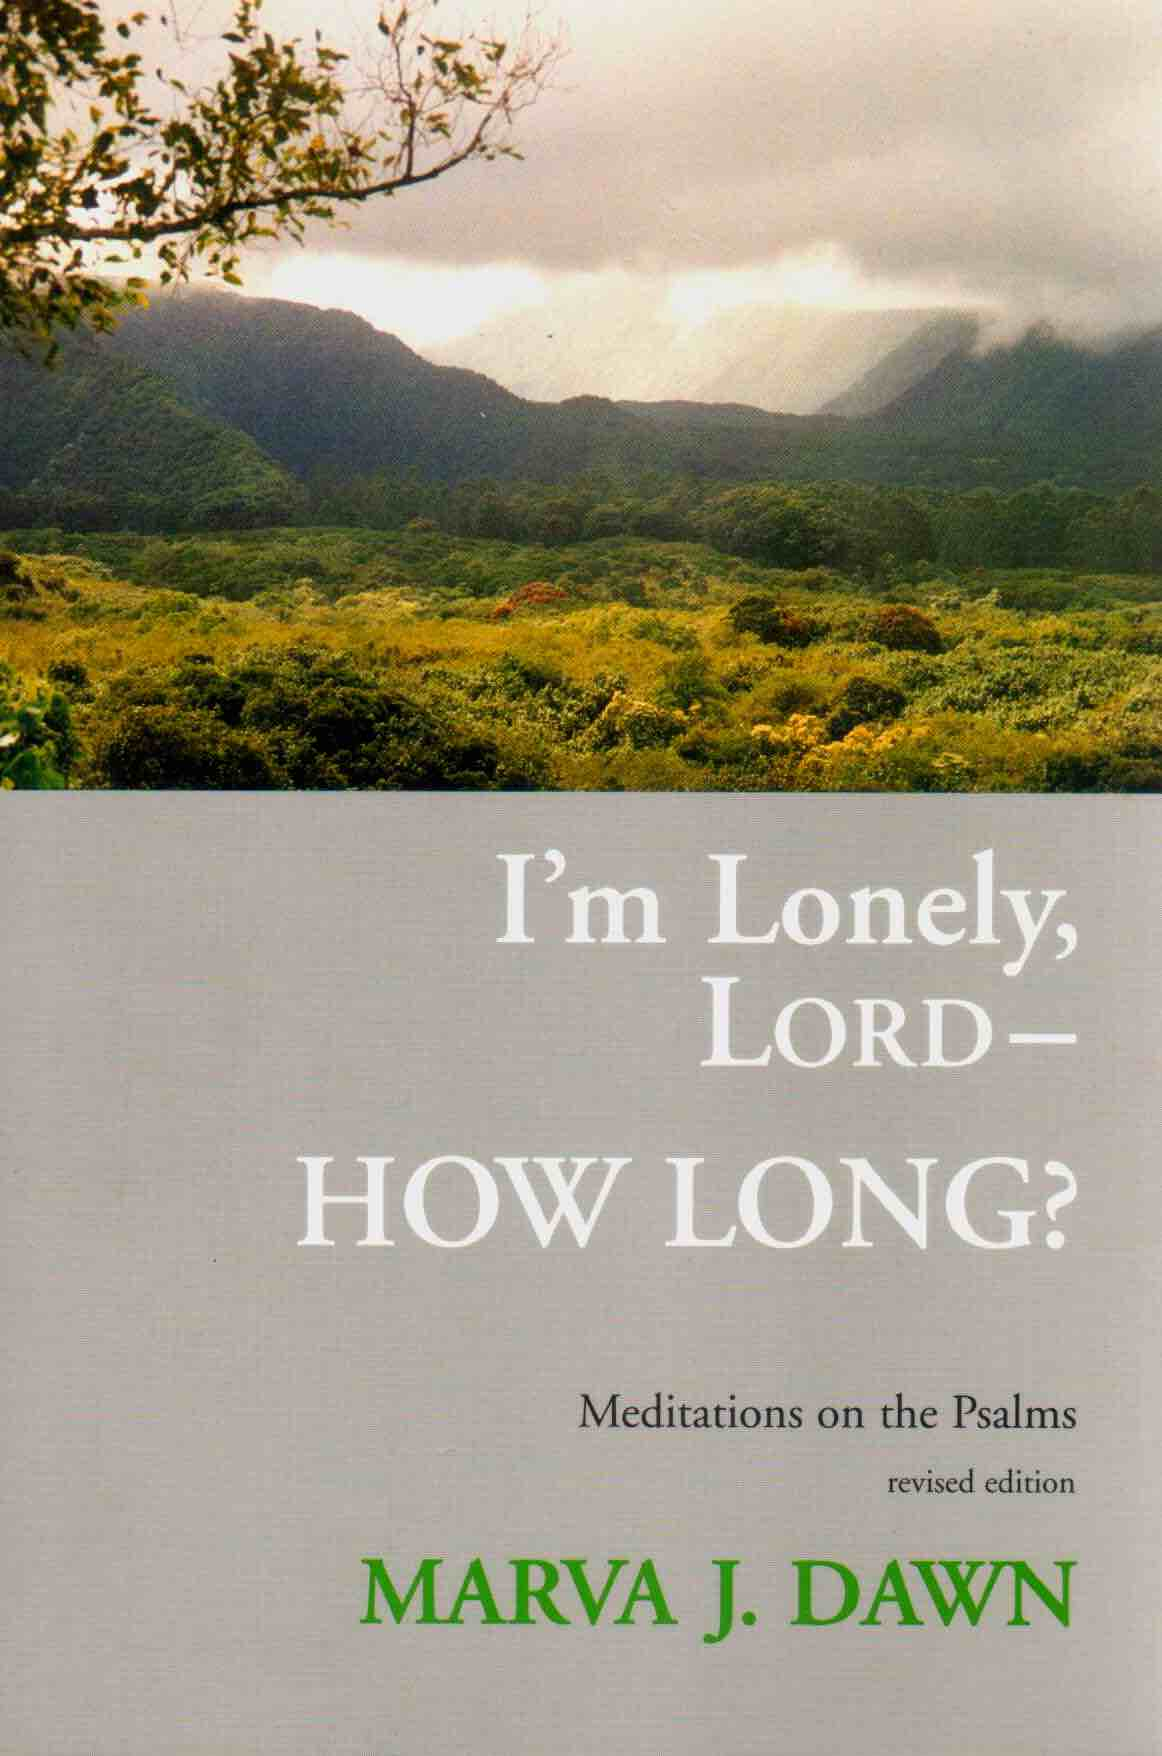 I'm Lonely, Lord - How Long?